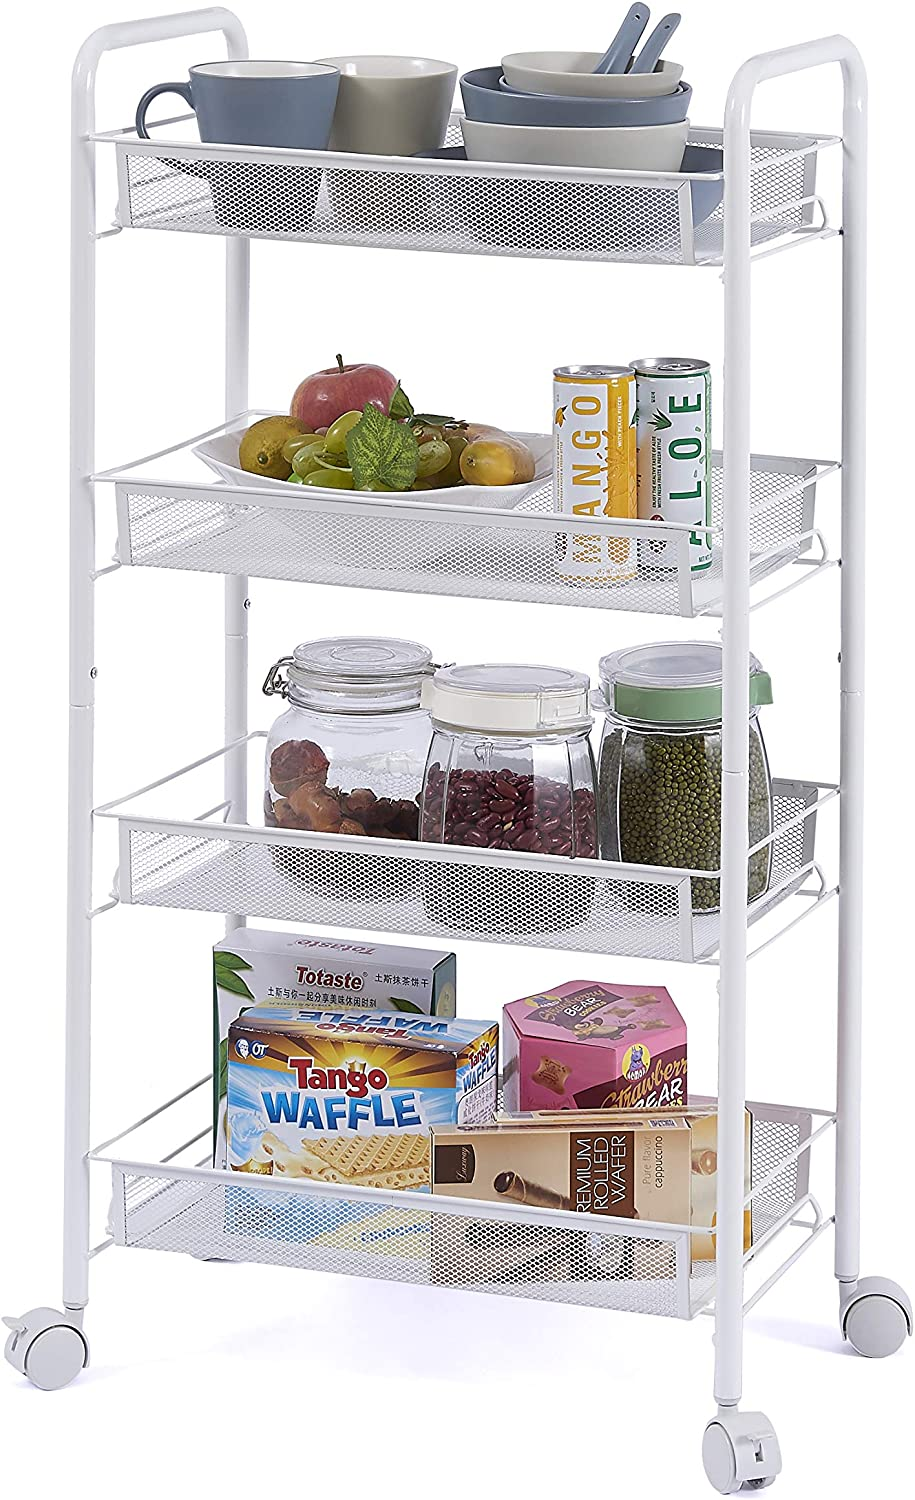 Ovicar Mesh Utility Cart, Rolling Basket Stand for Kitchen & Bathroom, Full Metal Storage Art Trolley Carts with Wheels & 4 Side Hooks (4 Tier, White)